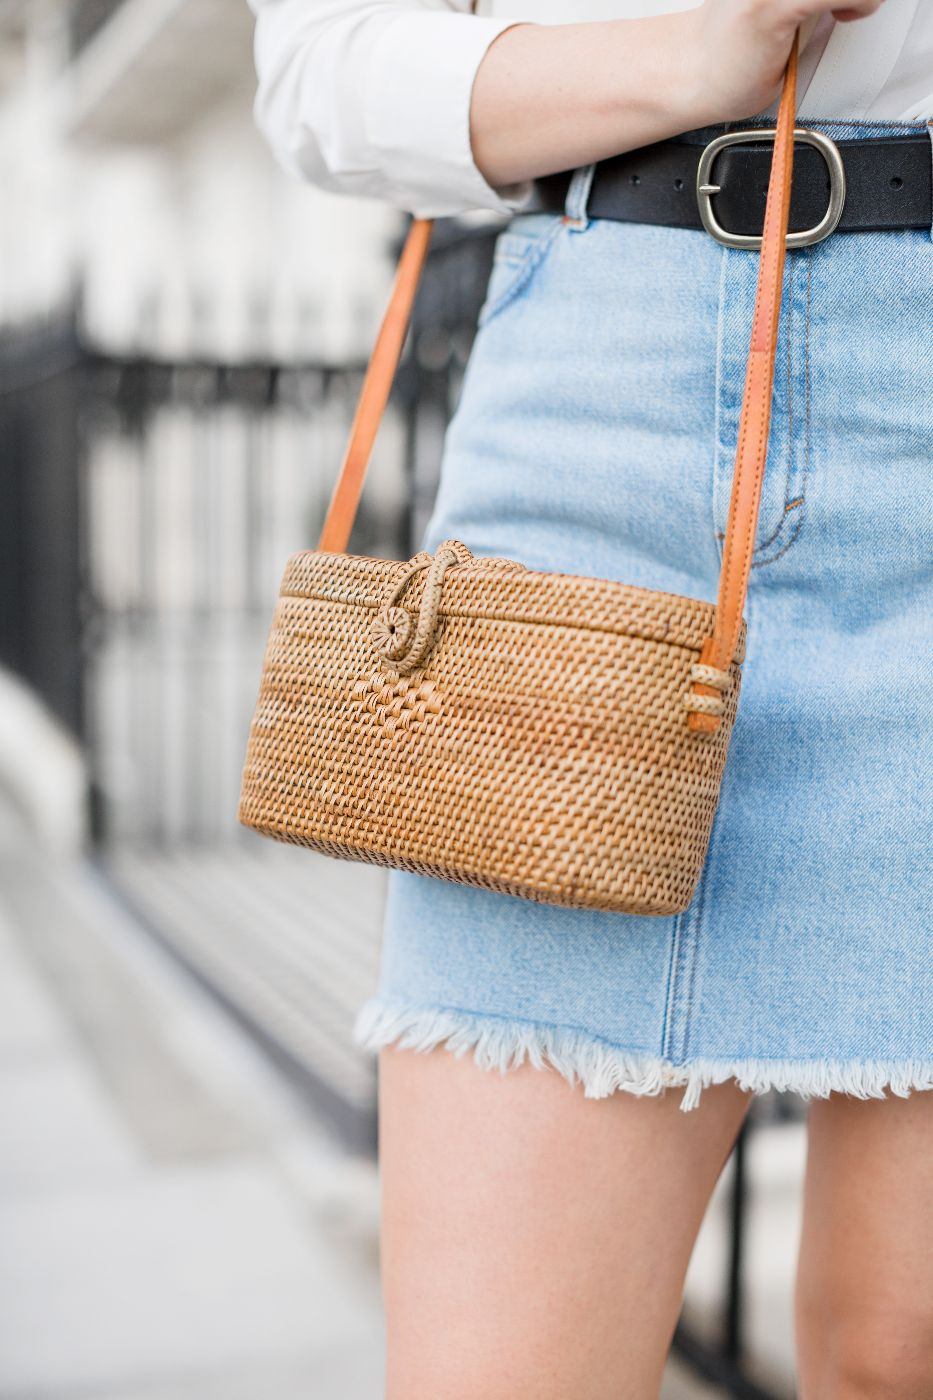 theannaedit-new-summer-outfit-wicker-basket-bag-august-2017-6